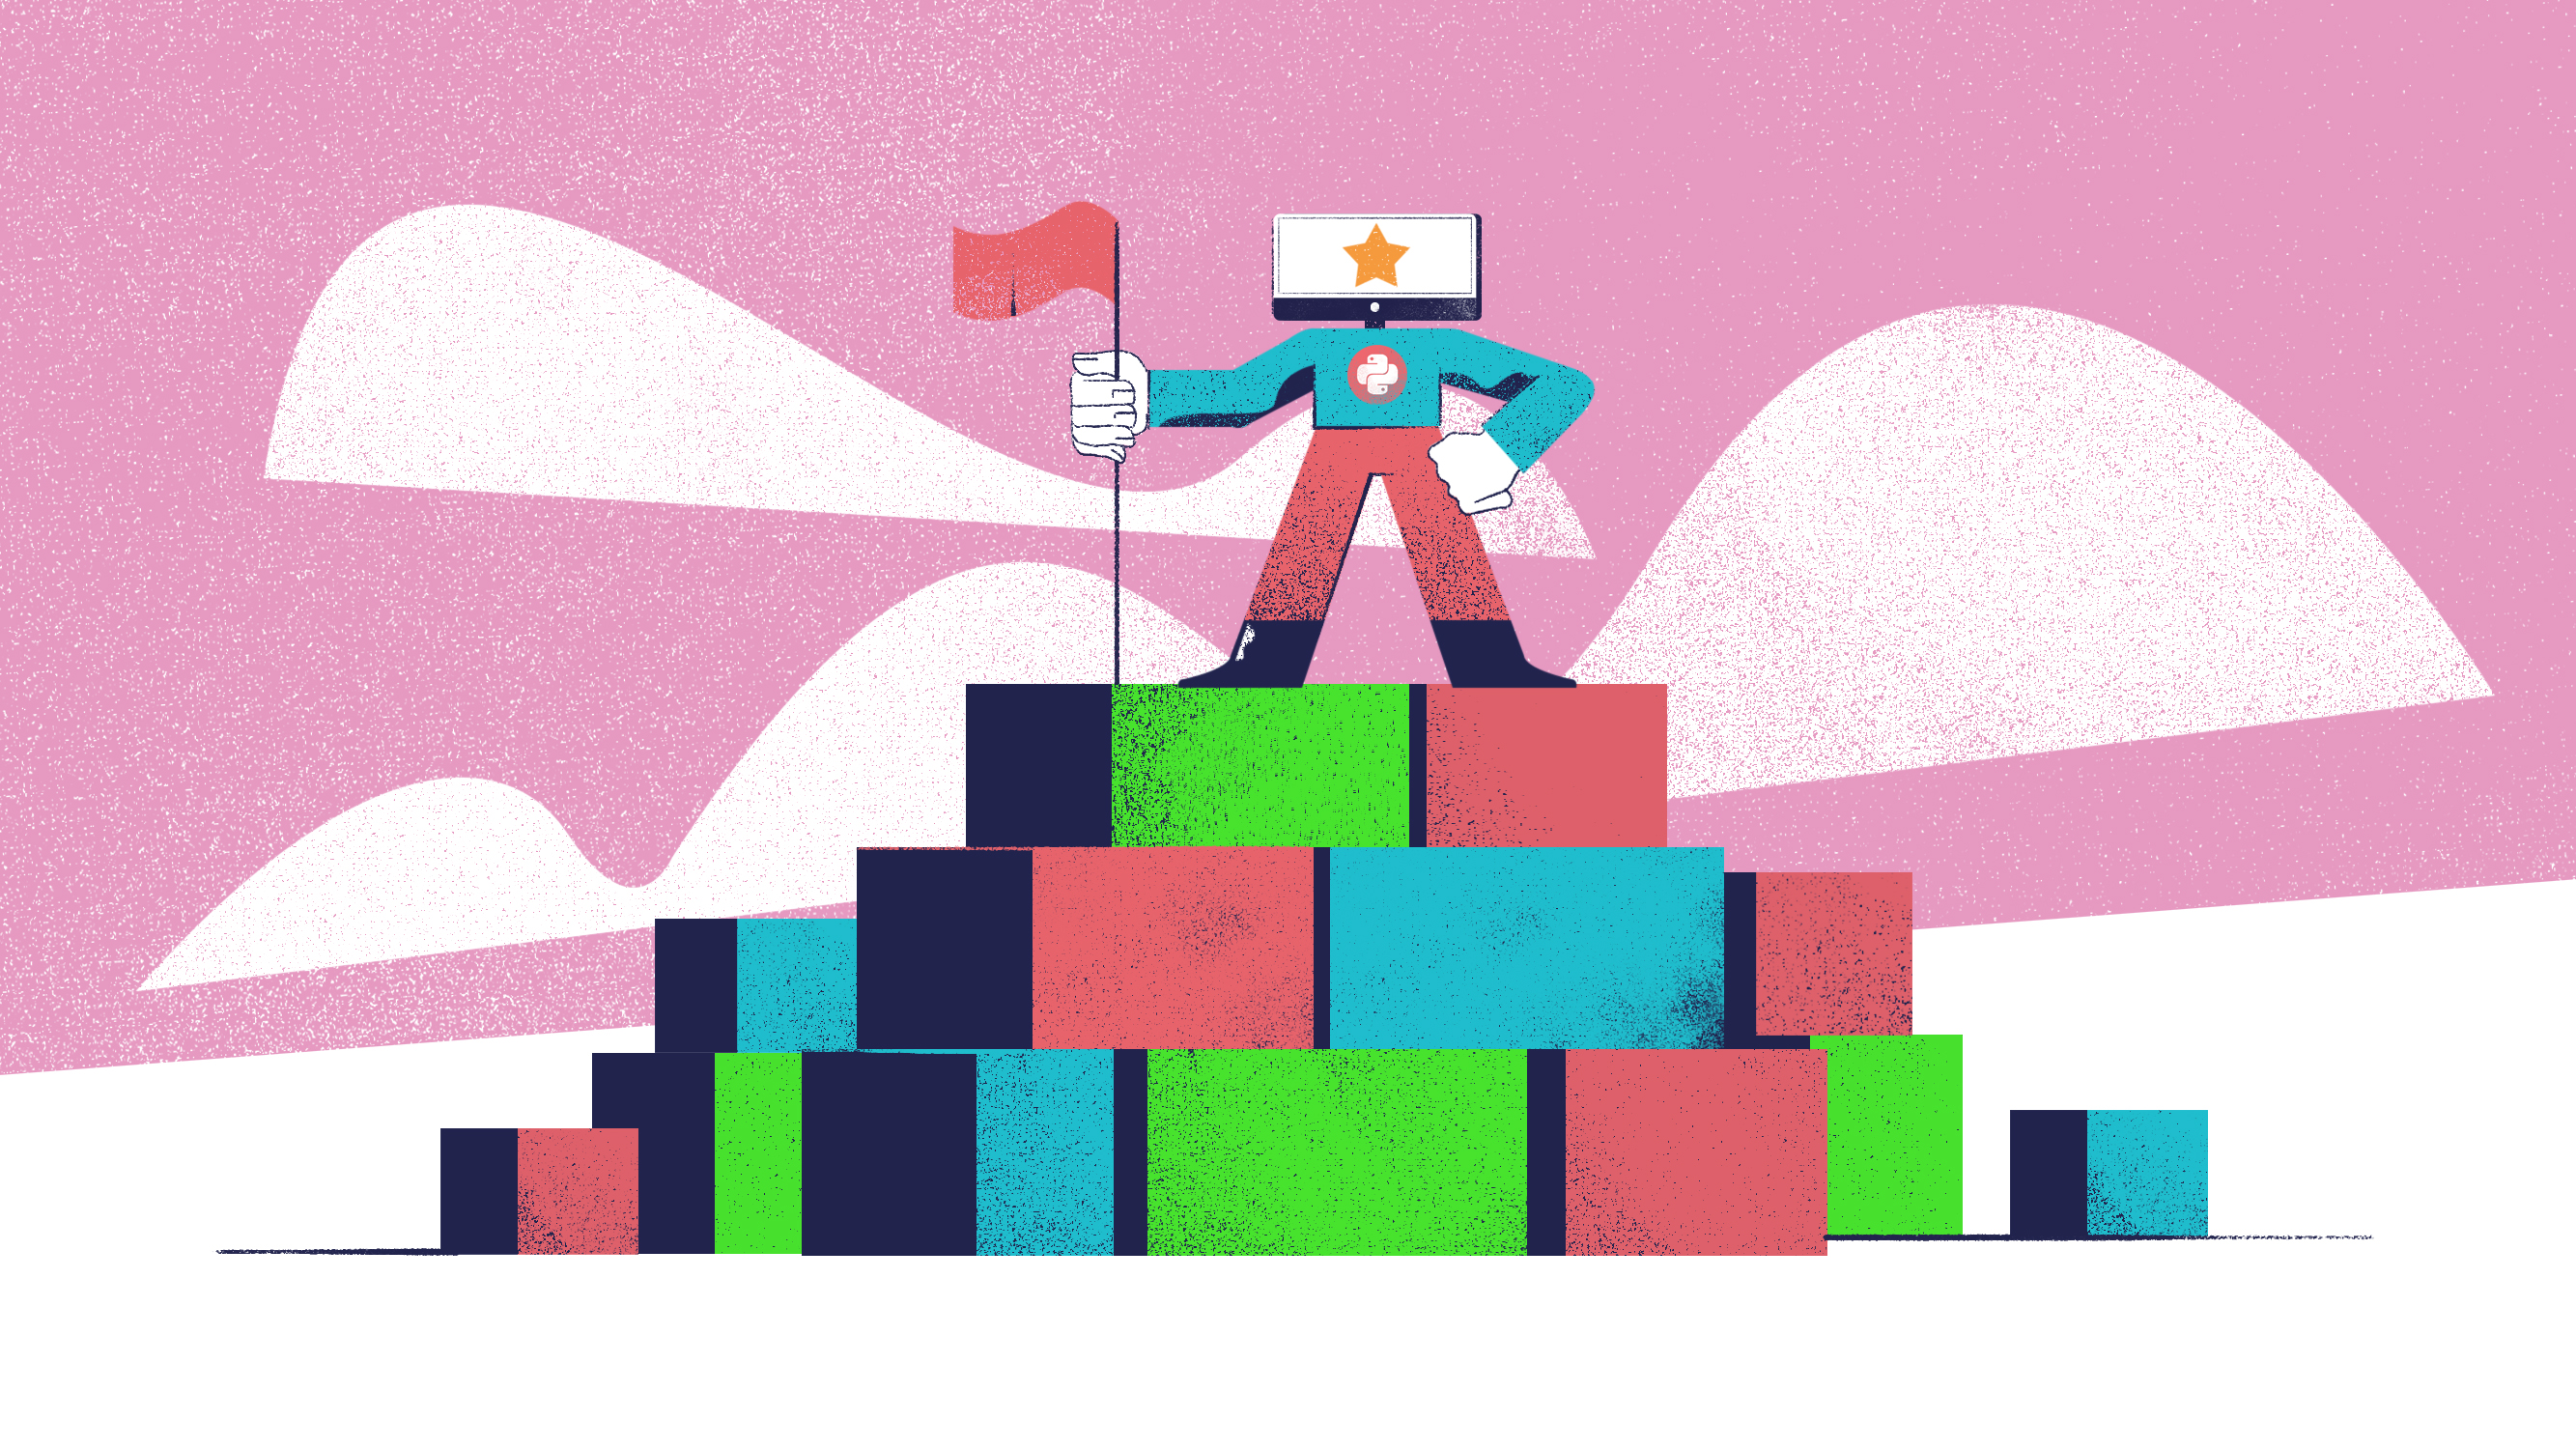 Python Guru planting a flag atop of a mountain made of abstract cubes, representing his progress in learning to code. With a dark pink background to match the day 30 image.